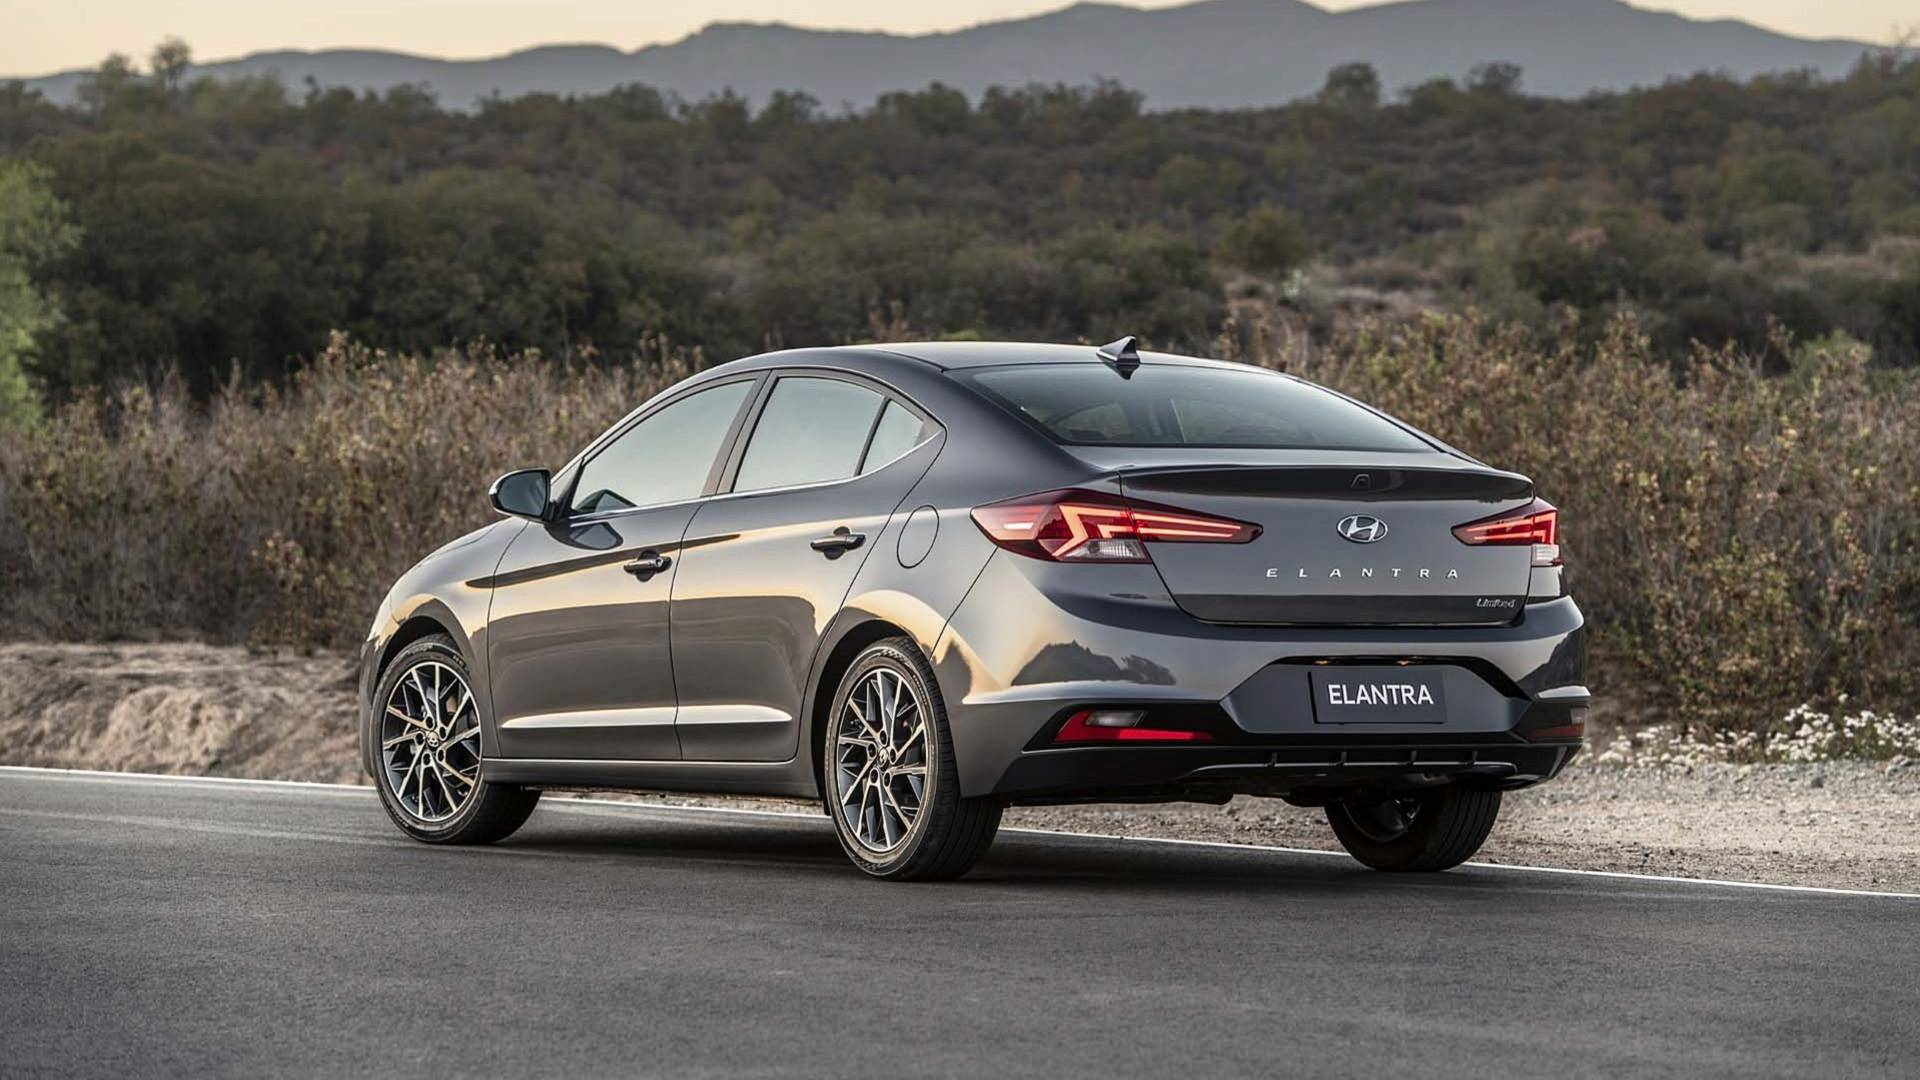 2019 Hyundai Elantra Pricing Gets You More Bang For Your Buck